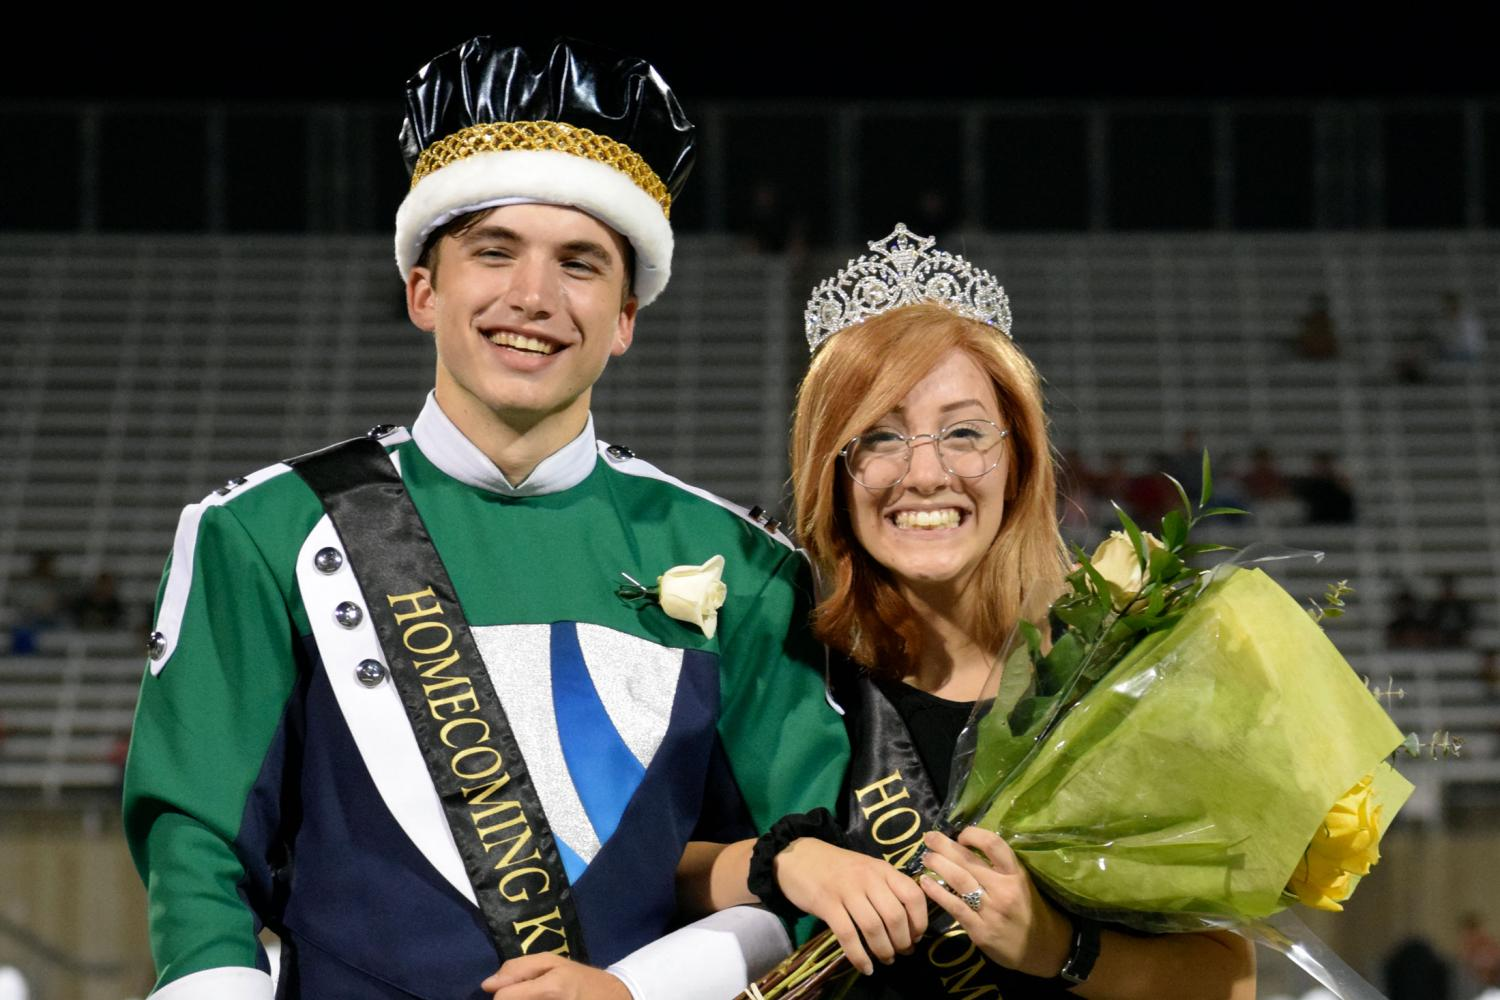 Seniors Jack Graves and Natalie Barnes pose for a picture after being crowned homecoming king and queen.